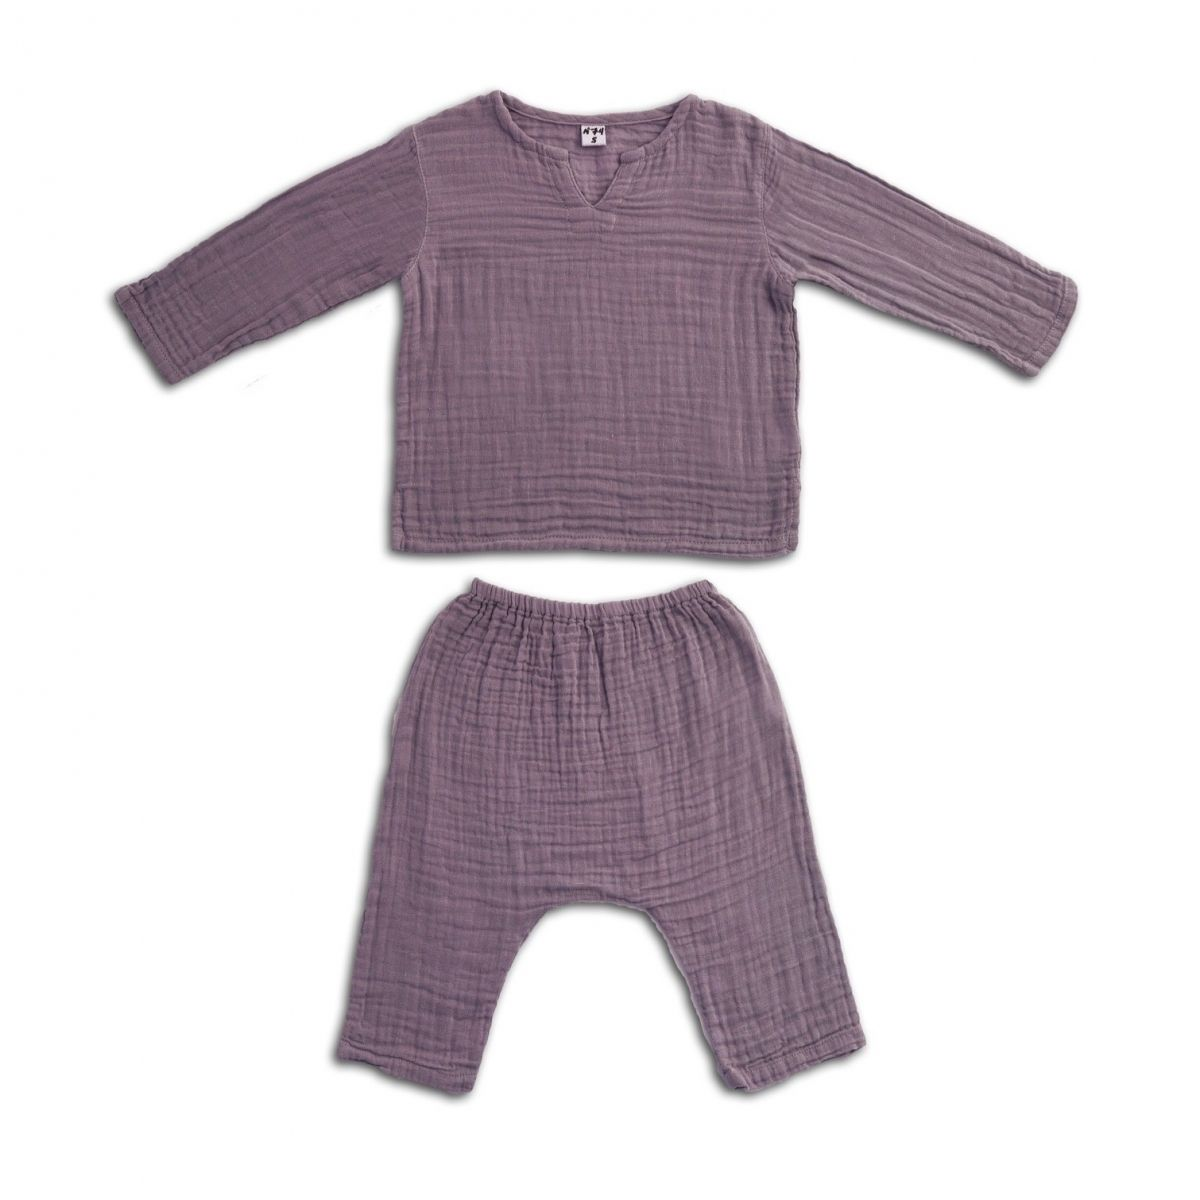 Suit Zac shirt & pants dusty lilac - Numero 74